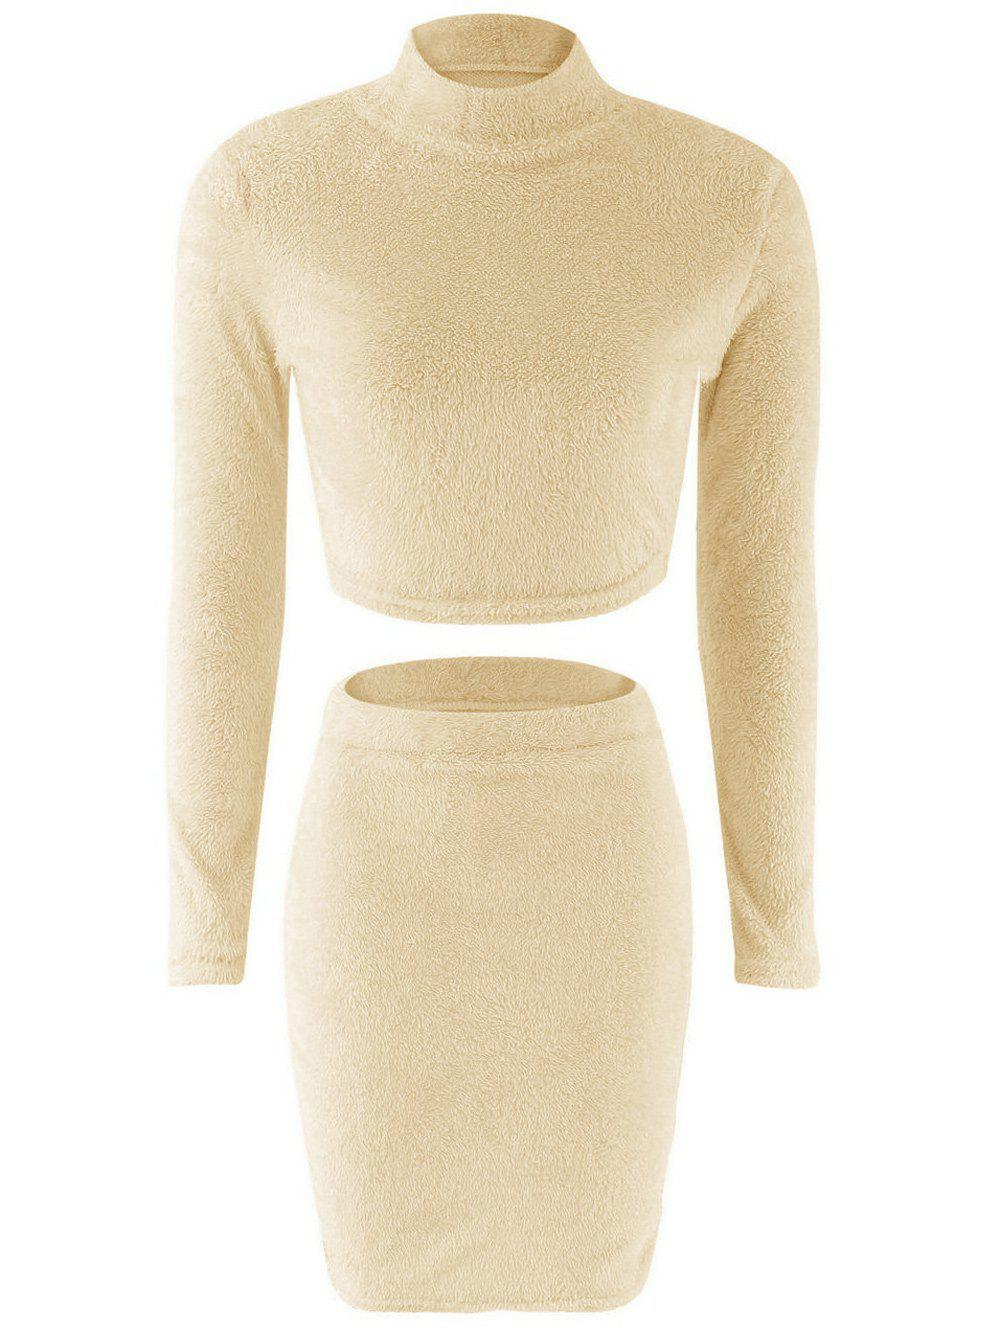 Fuzzy Crop Top + Elastic Waist Bodycon Skirt Twinset - BEIGE S